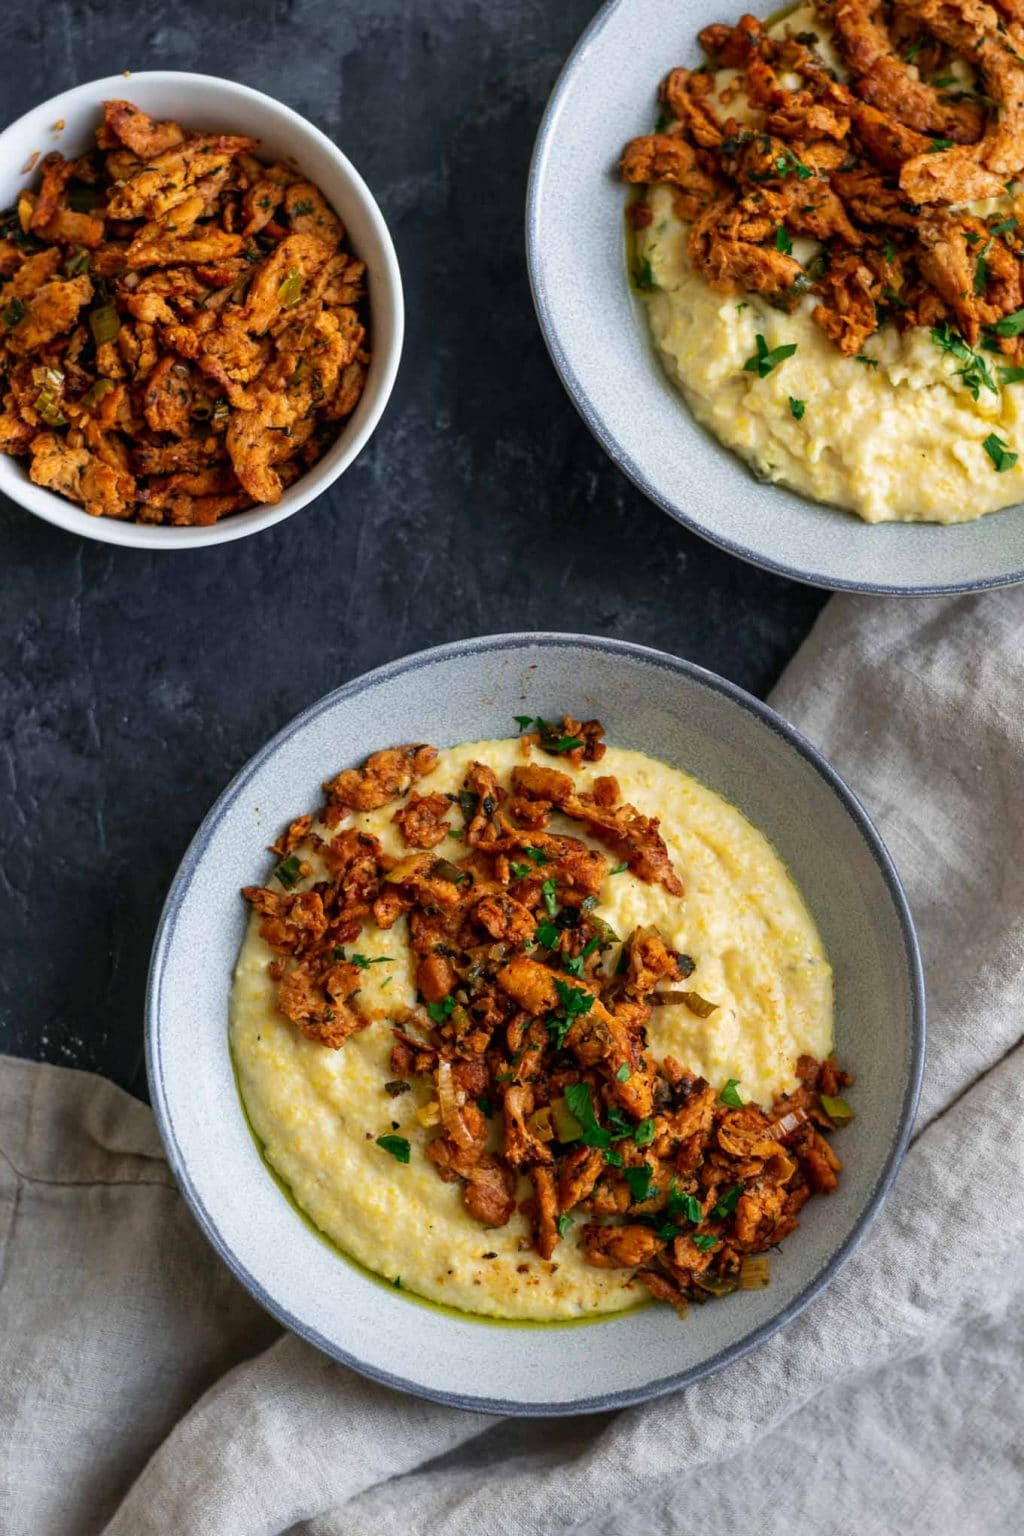 Cajun soy curls and creamy vegan jalapeño grits, two servings with an extra bowl of cajun soy curls